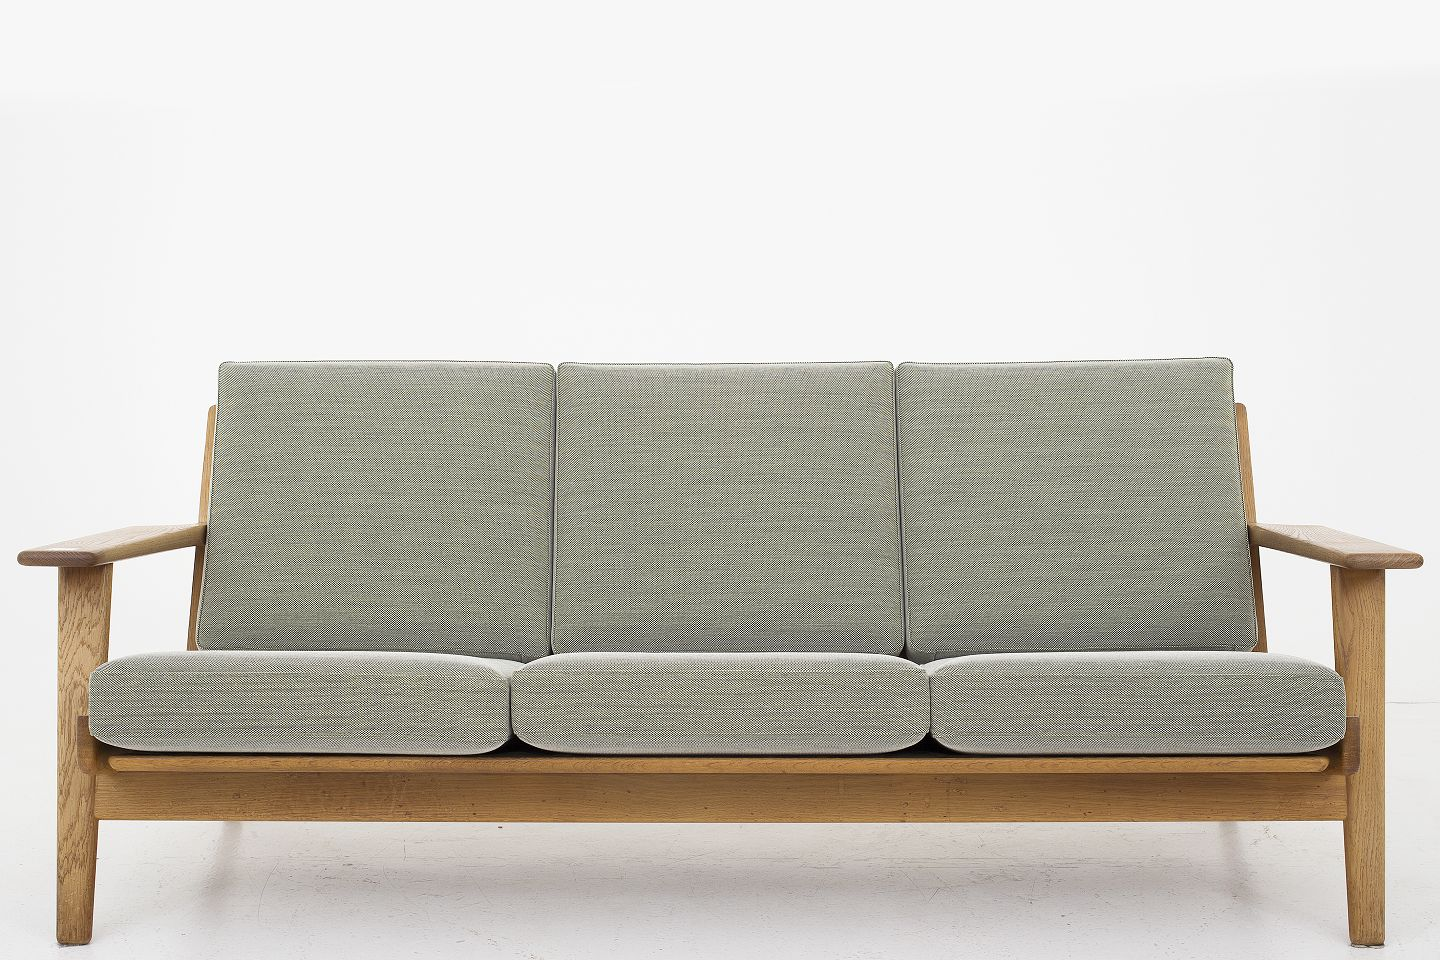 Hans J. Wegner / Getama GE 290   3 Pers. Sofa With New Cushions From Getama  And New Upholstery In Steelcut Trio 2 (color 915) From Kvadrat.